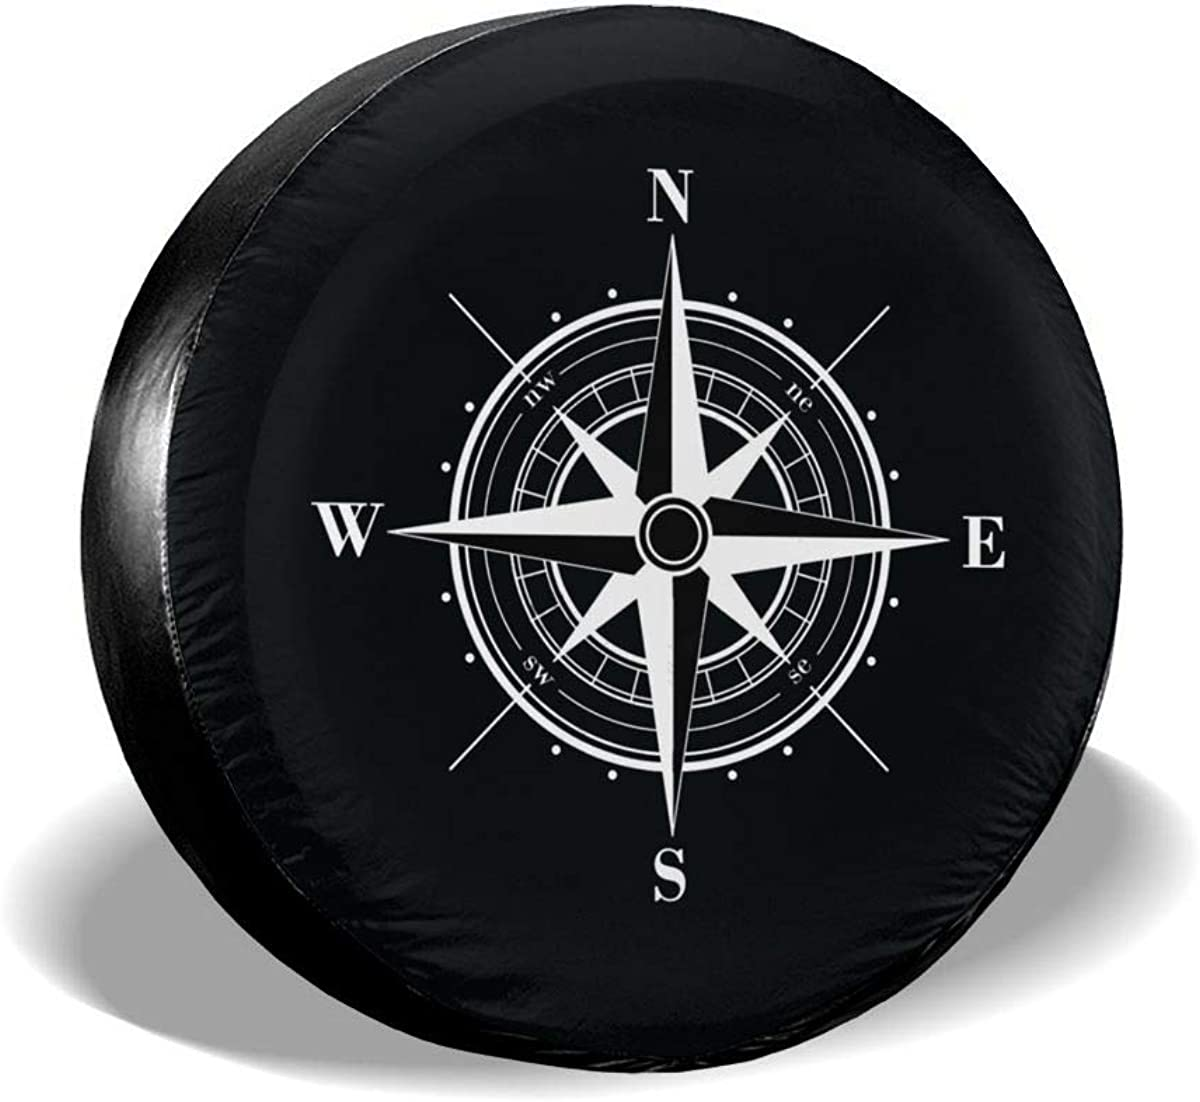 MSGUIDE Spare Tire Cover Compass Wind Rose for Jeep Trailer Rv Truck 14 15 16 17 Inch Sunscreen Dustproof Corrosion Proof Wheel Cover